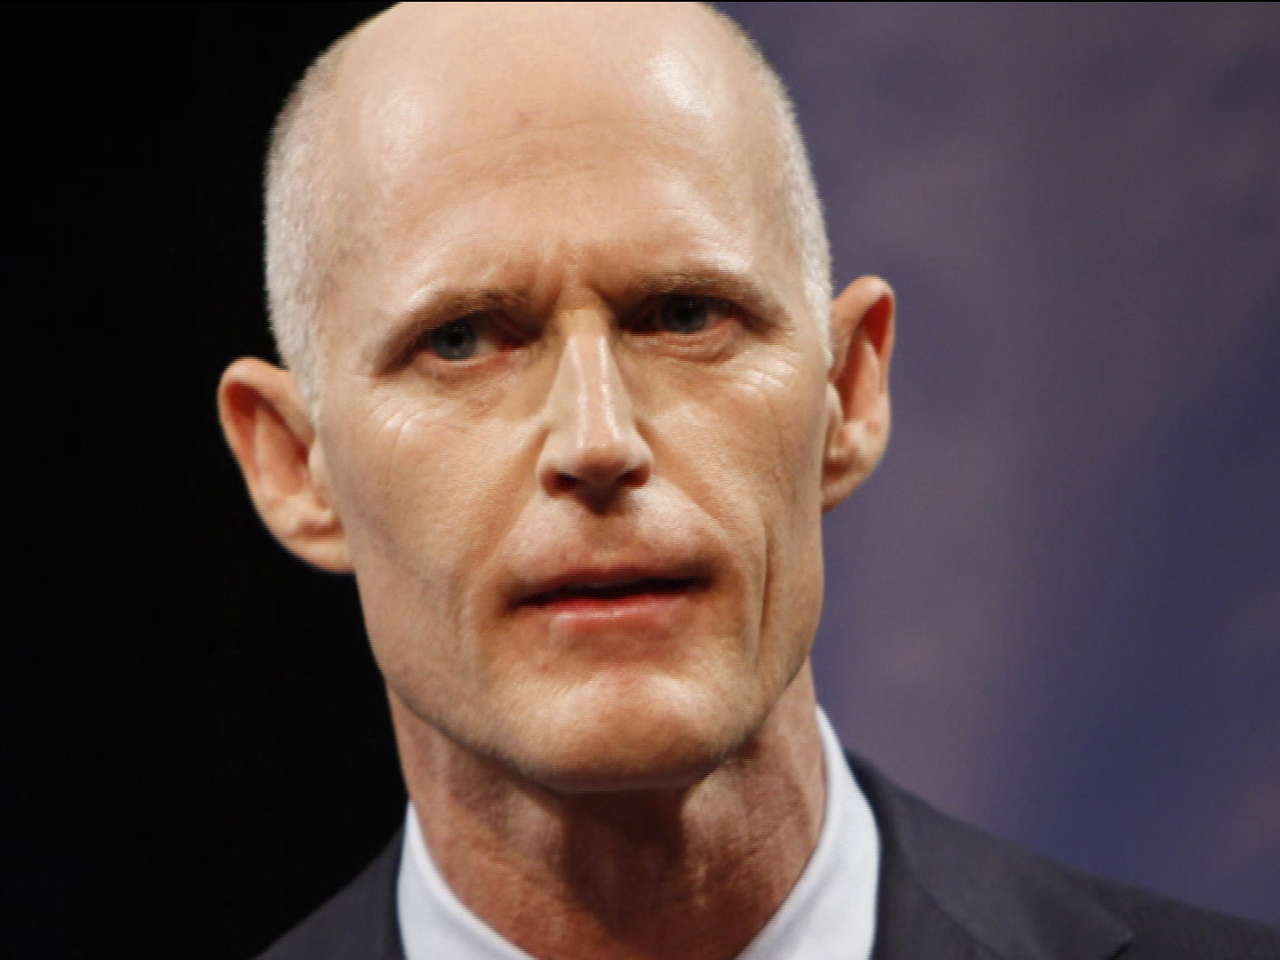 Florida alimony reform - Governor Rick Scott